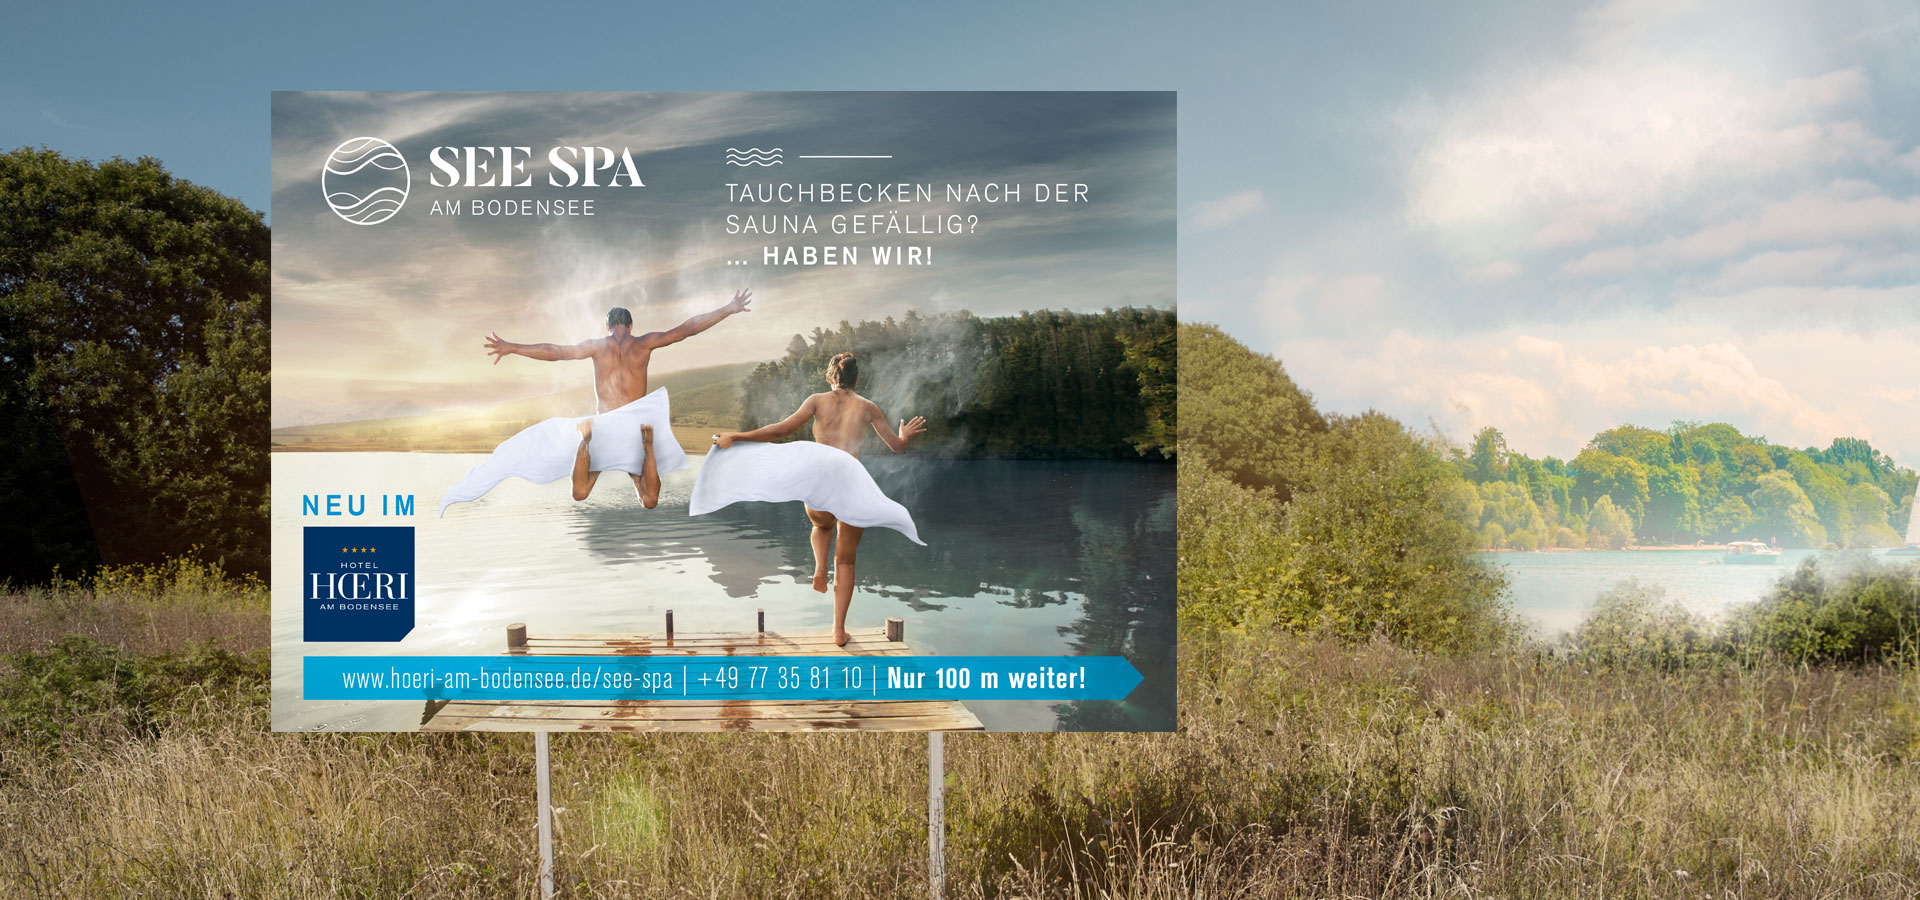 OPUS Marketing / Hotelmarketing / Großflächenwerbung / See Spa / Tauchbecken